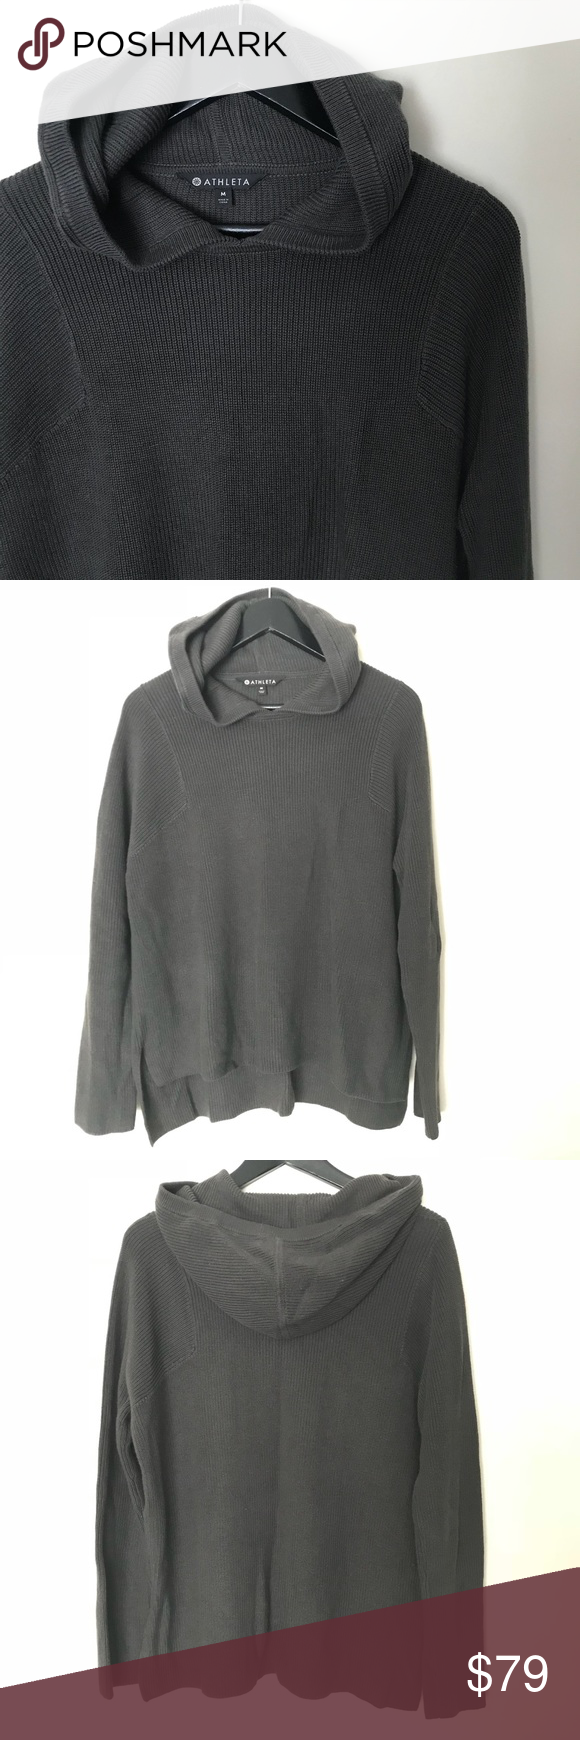 8cc42cea3a8e8 Athleta Sz M Rest day hoodie dark green grey knit Athleta Sz M Rest day Hoodie  dark green grey knit hoodie This lightweight layer goes from summer to fall  ...